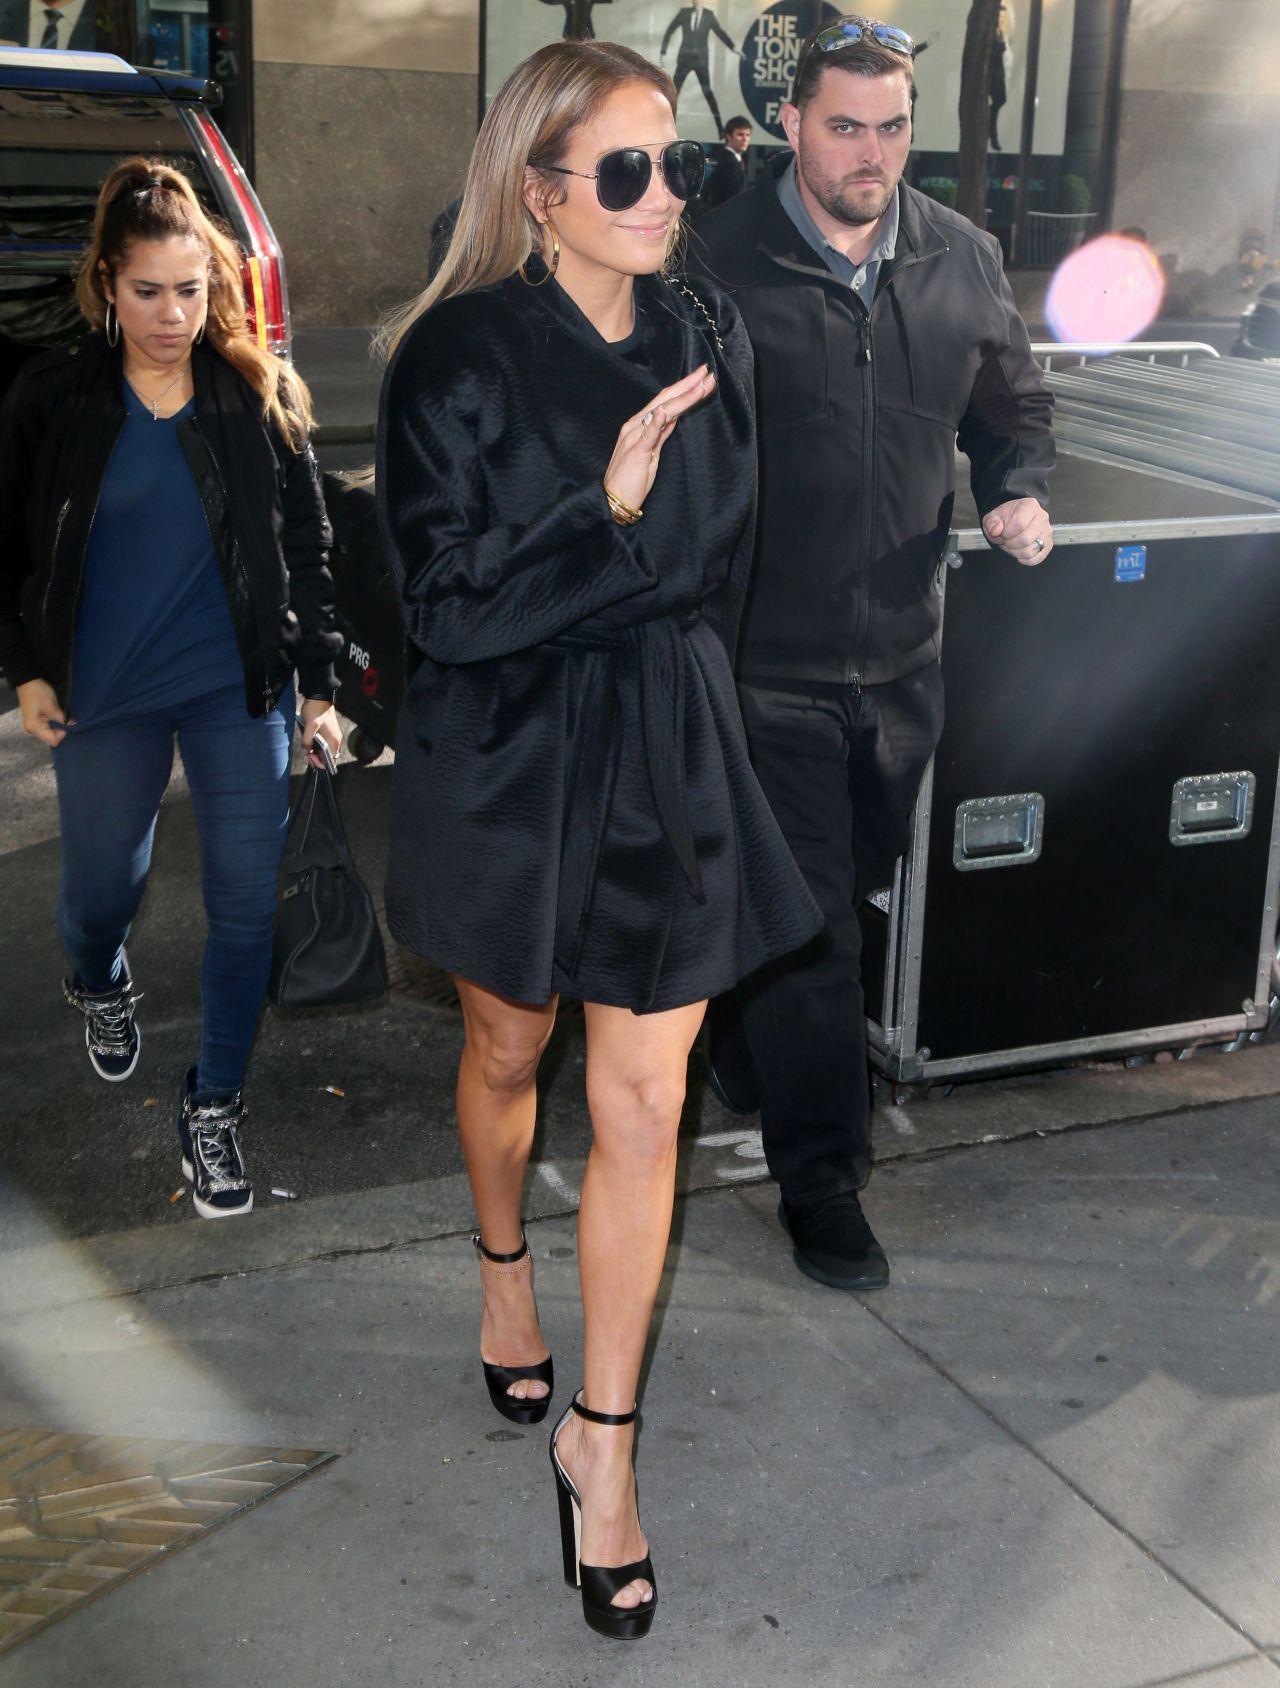 Kylie minogue leaving a building in londons west end advise